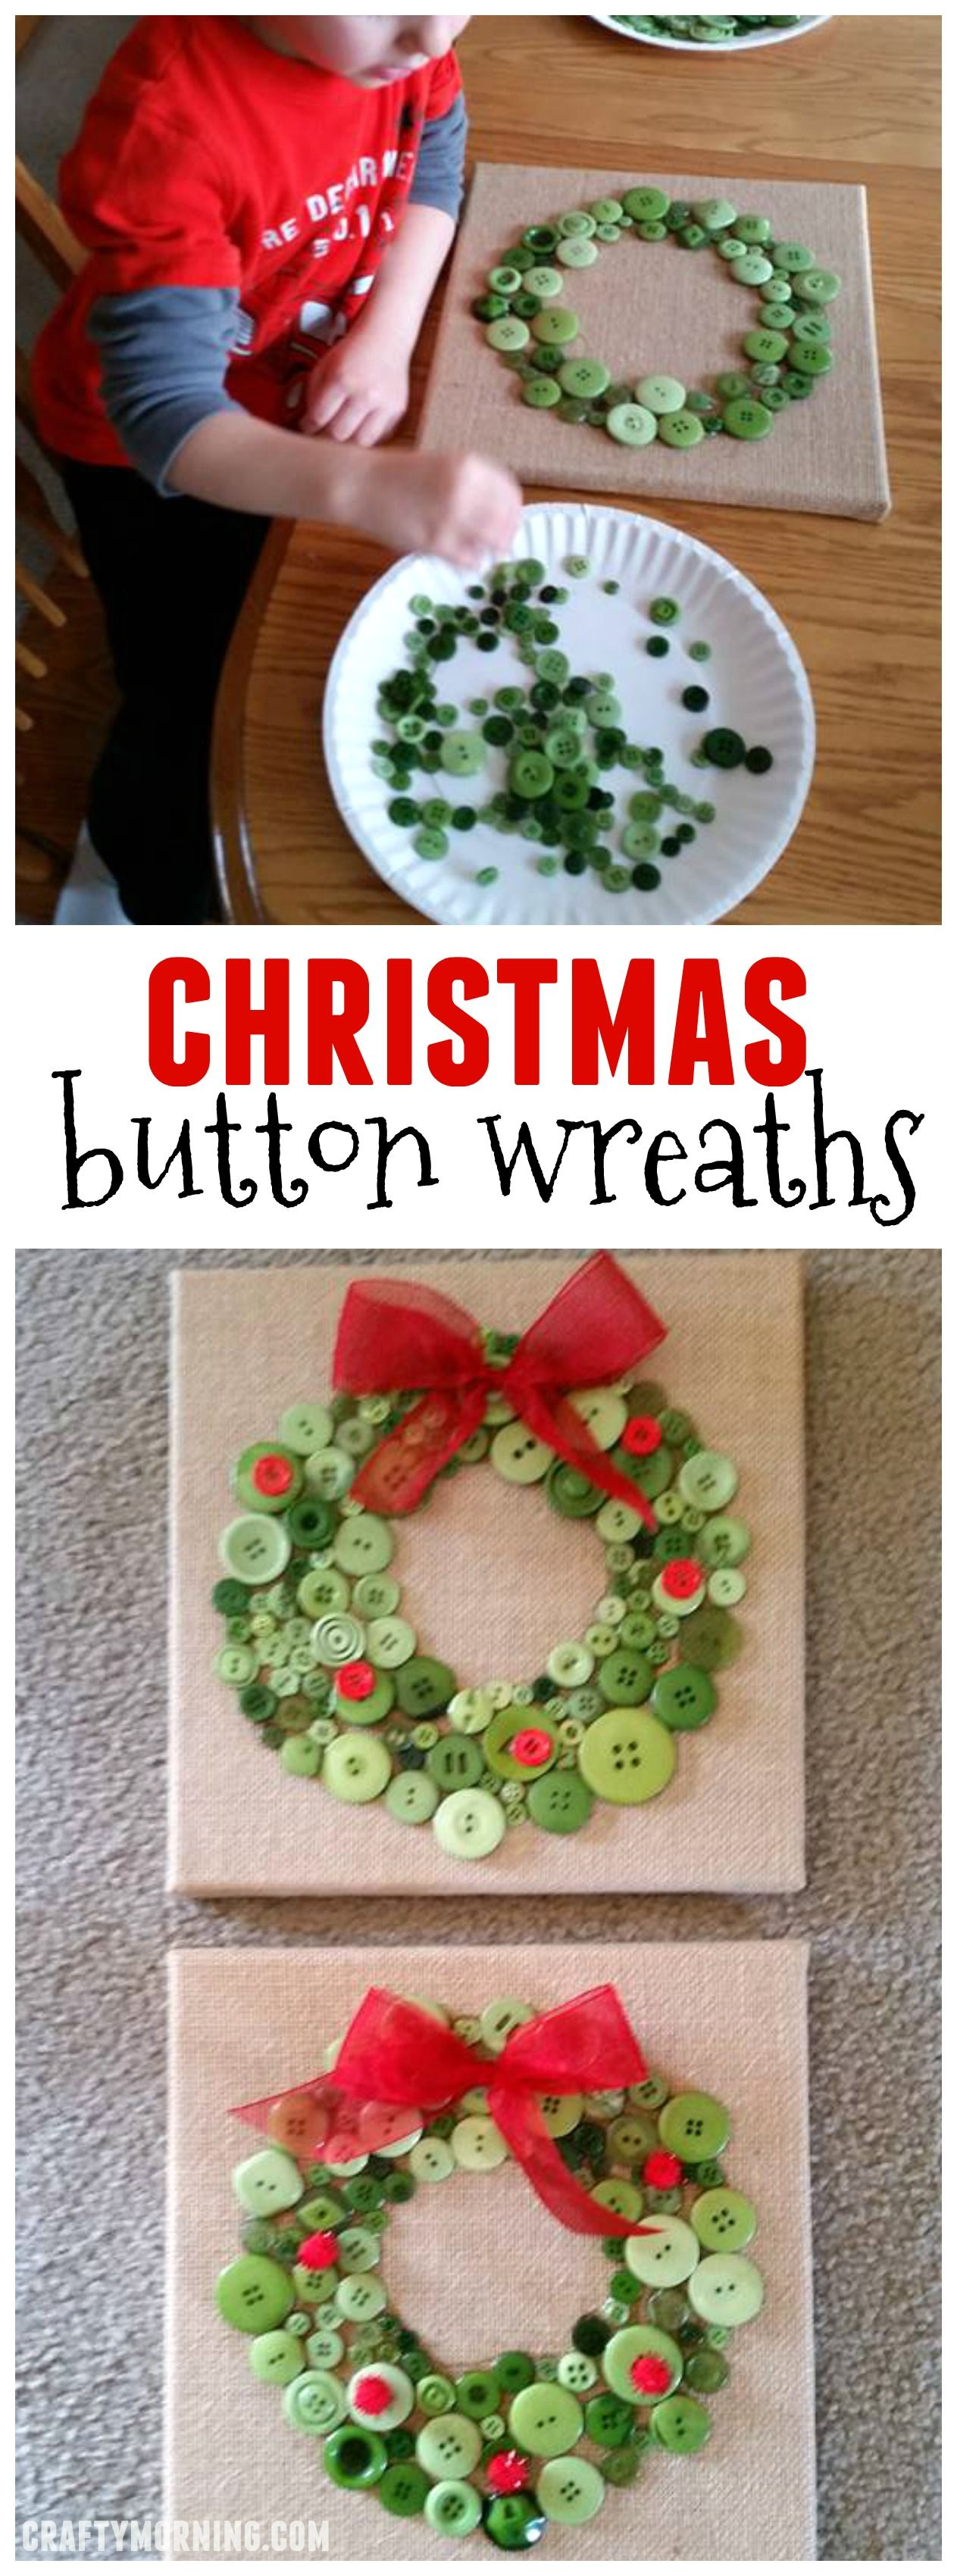 Christmas Button Wreaths For A Kids Craftsooo Cute These Canvases